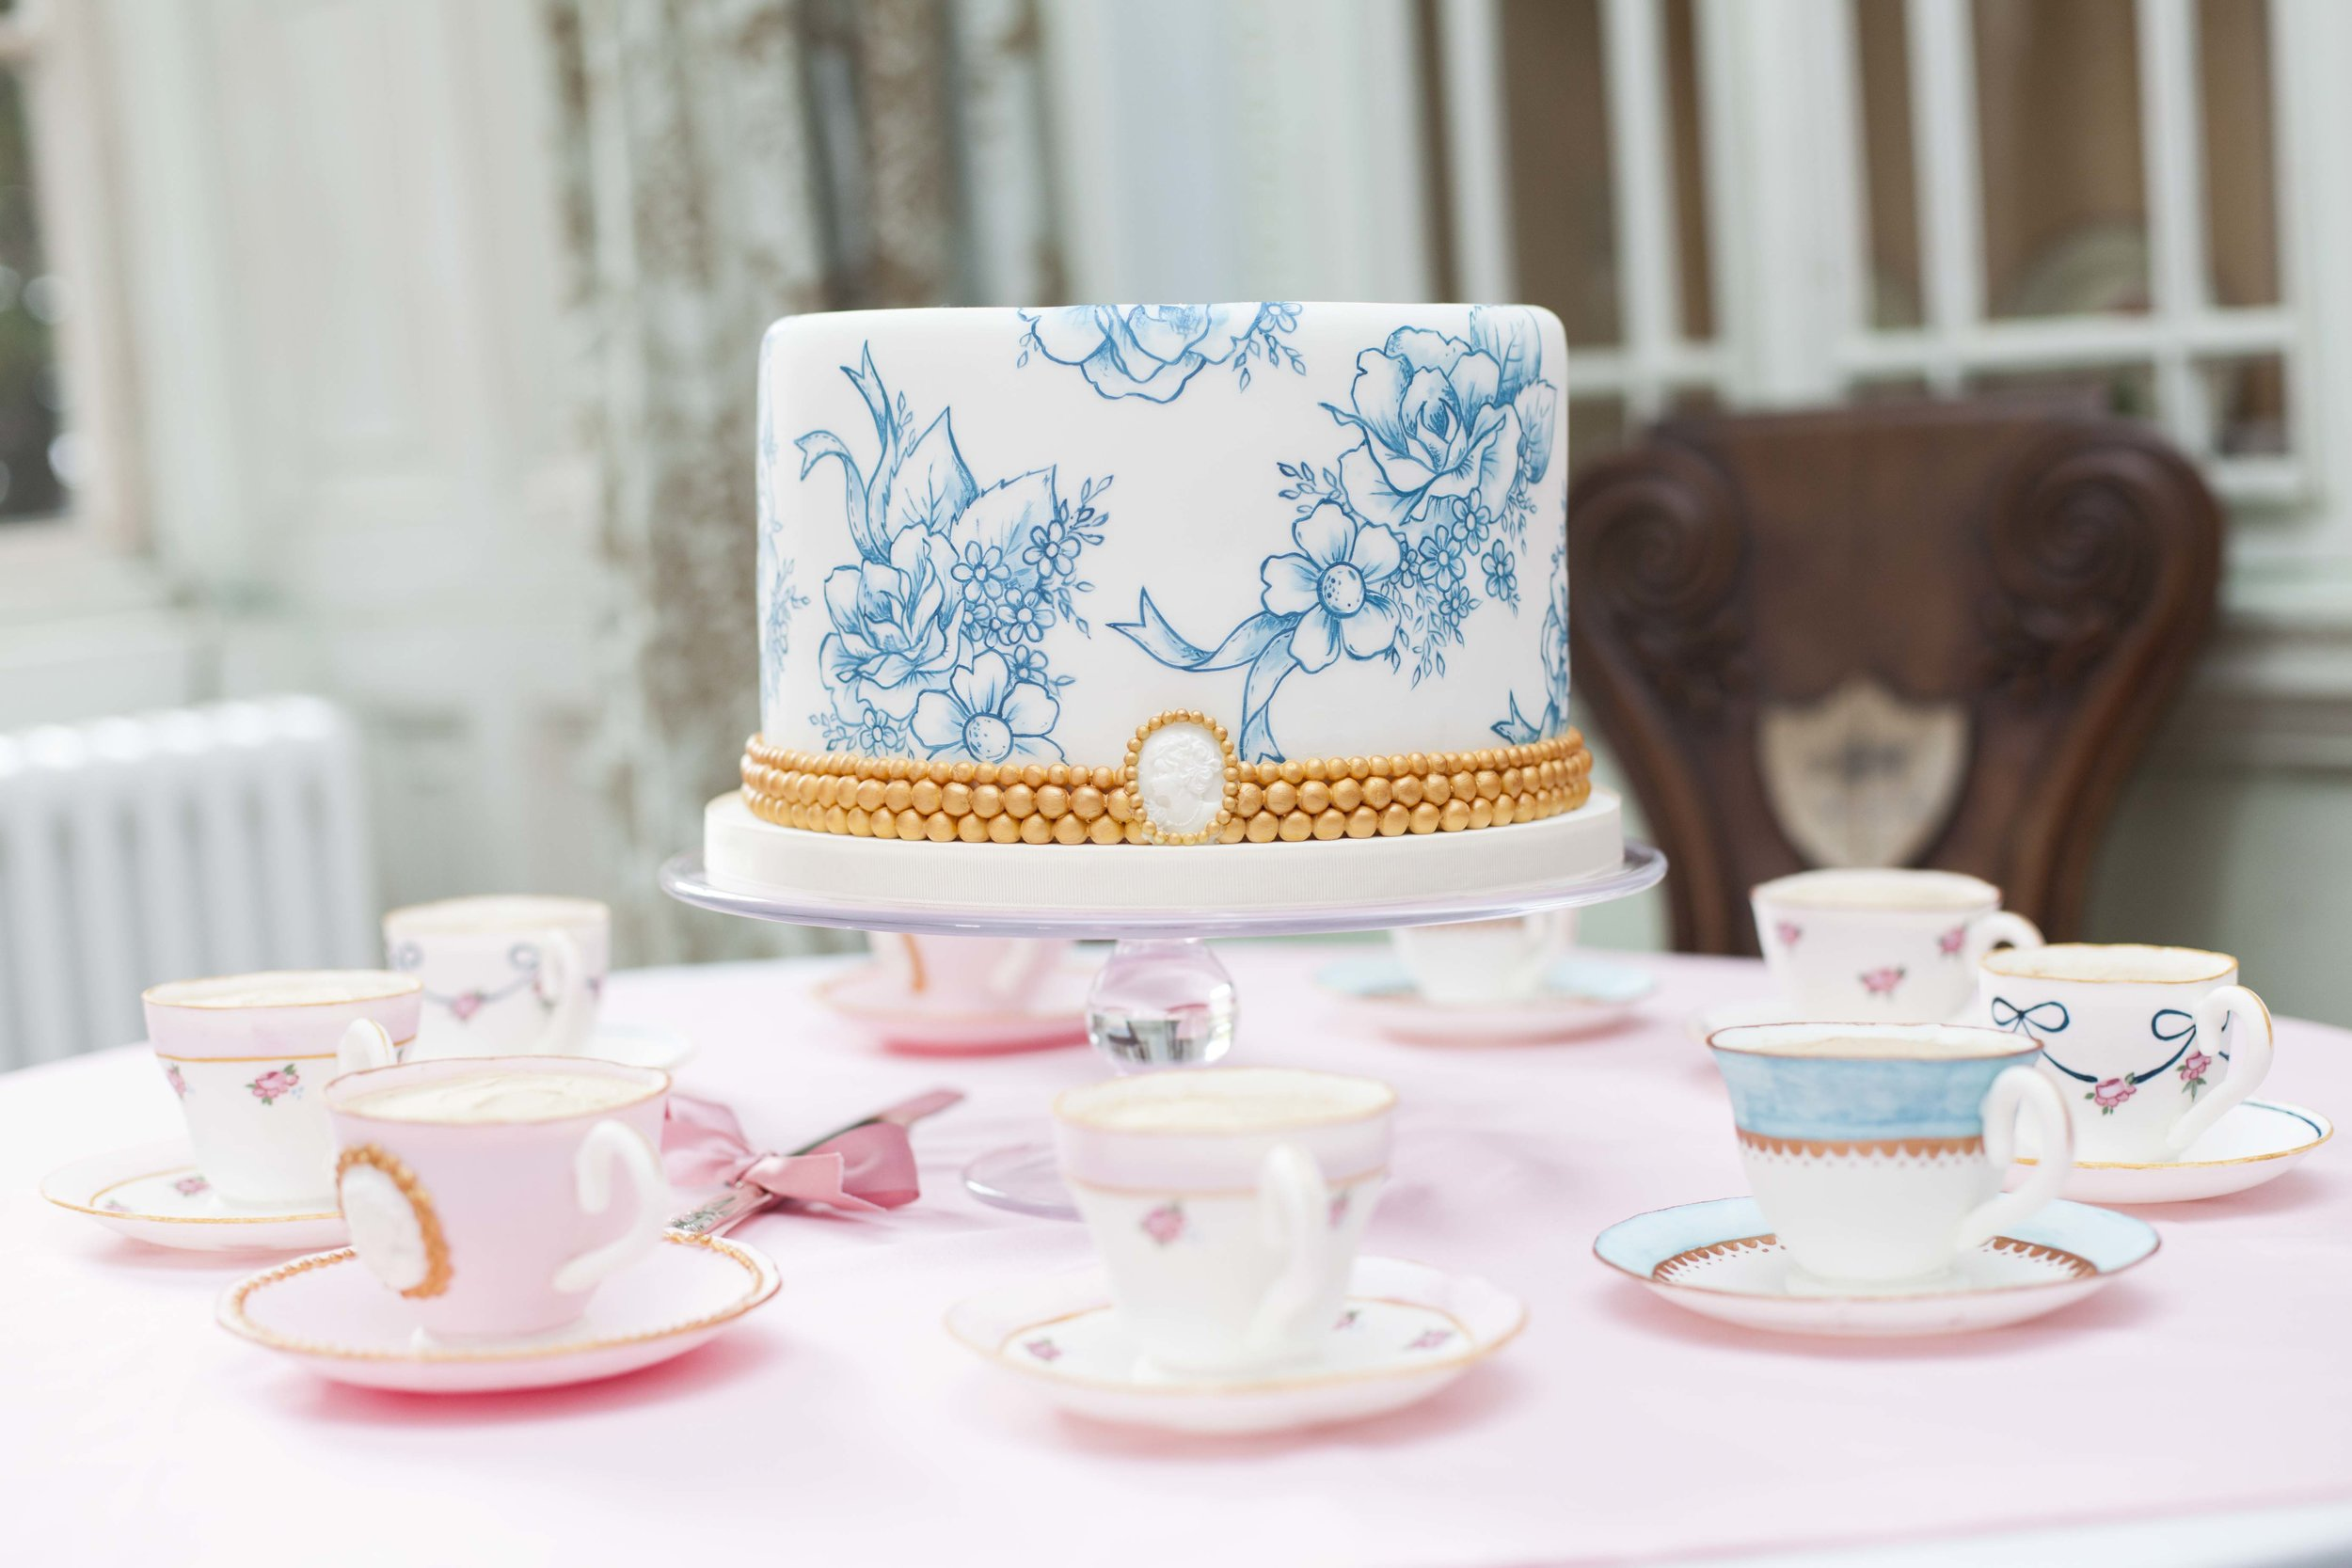 TOILE DU JOUY  A hand painted single tier cake for an intimate celebration decorated with a Toile Du Jouy pattern in blue and white. The cake is surrounded by edible teacups and saucers hand painted to complement the cake - these were given as special gifts to members of the bridal party.